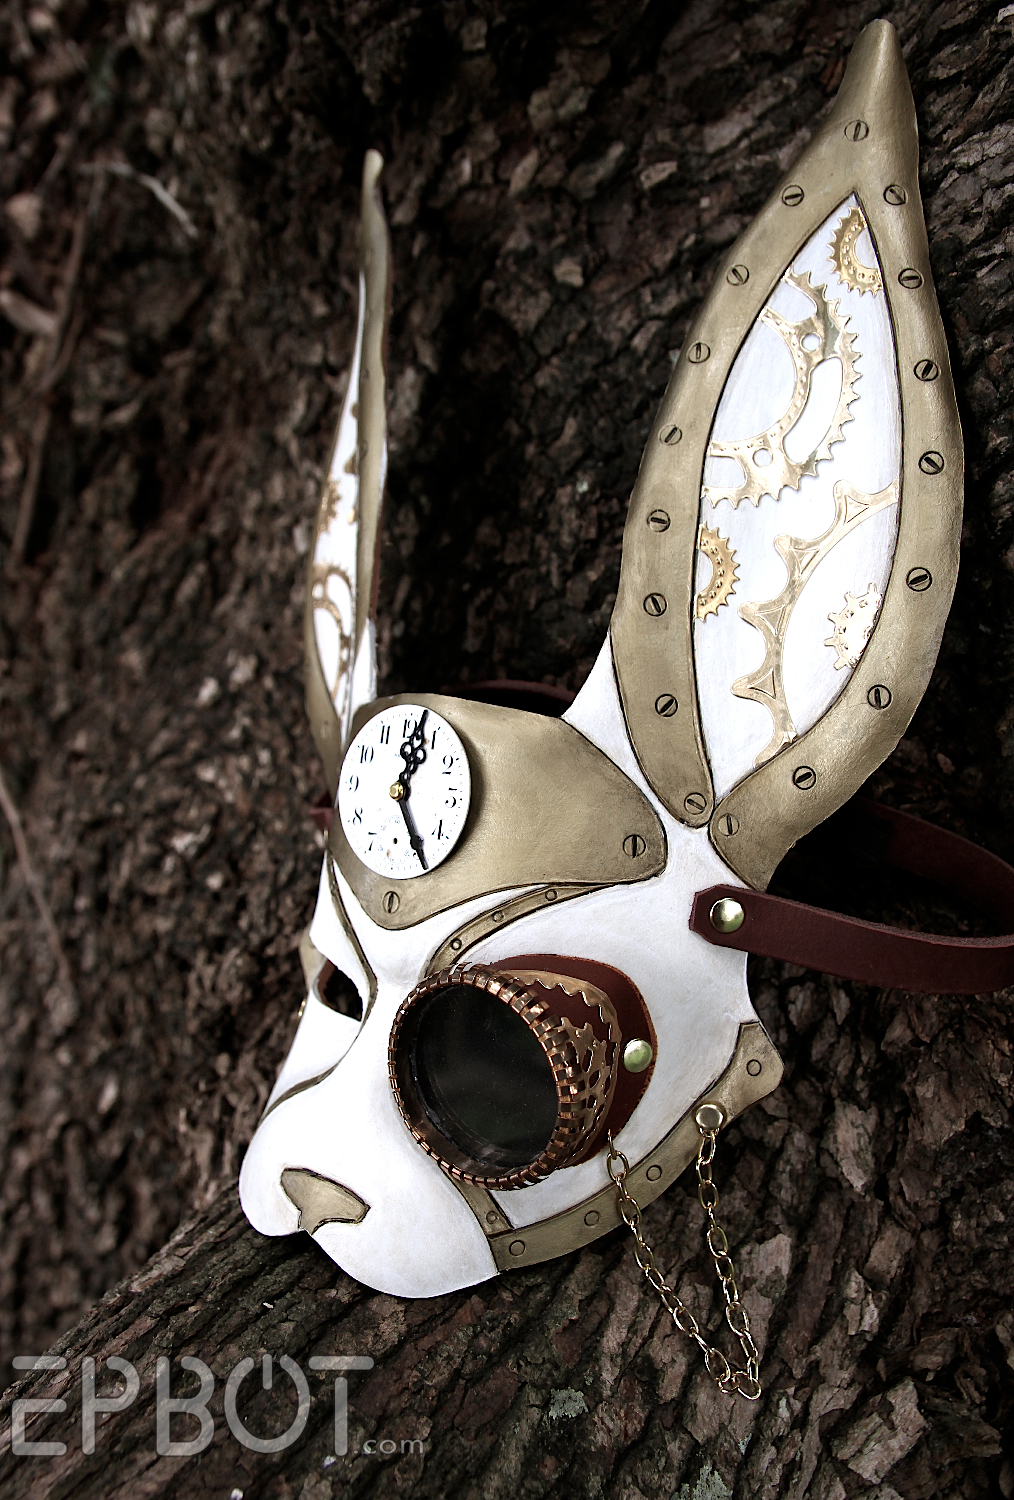 steampunk room decor.htm epbot down the rabbit hole my next cosplay project   epbot down the rabbit hole my next